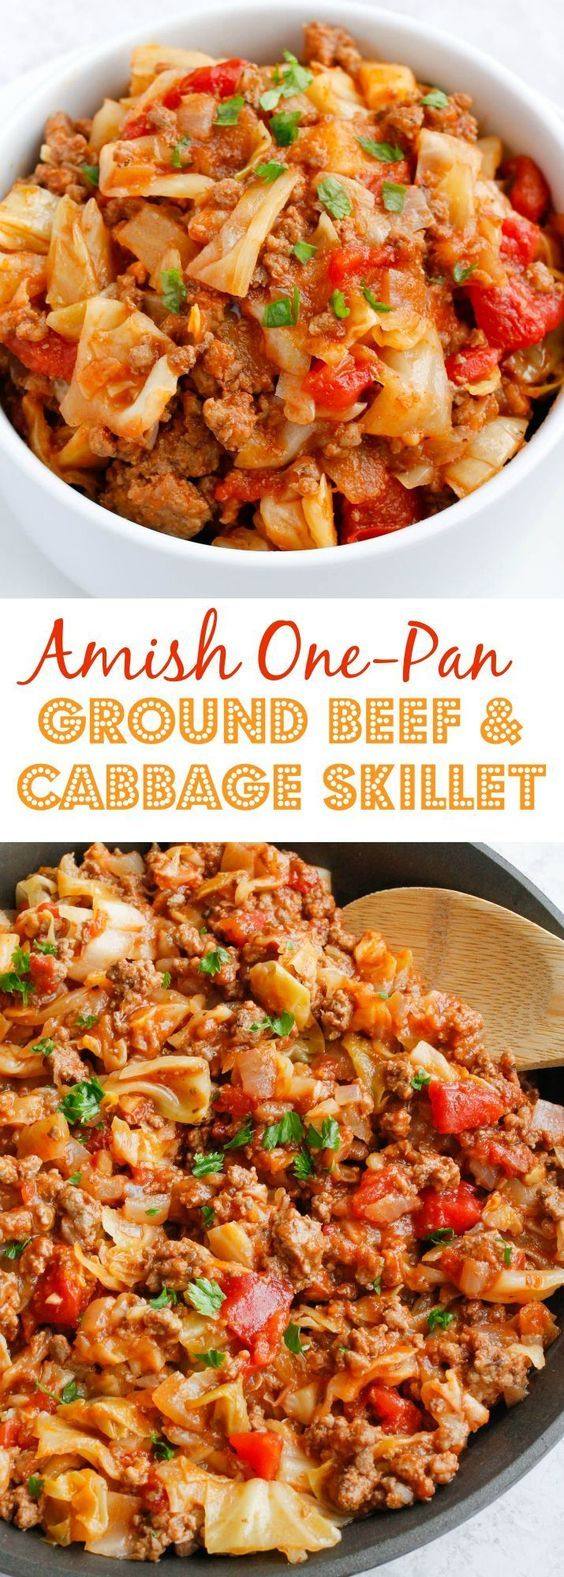 Amish One-Pan Ground Beef and Cabbage Skillet images